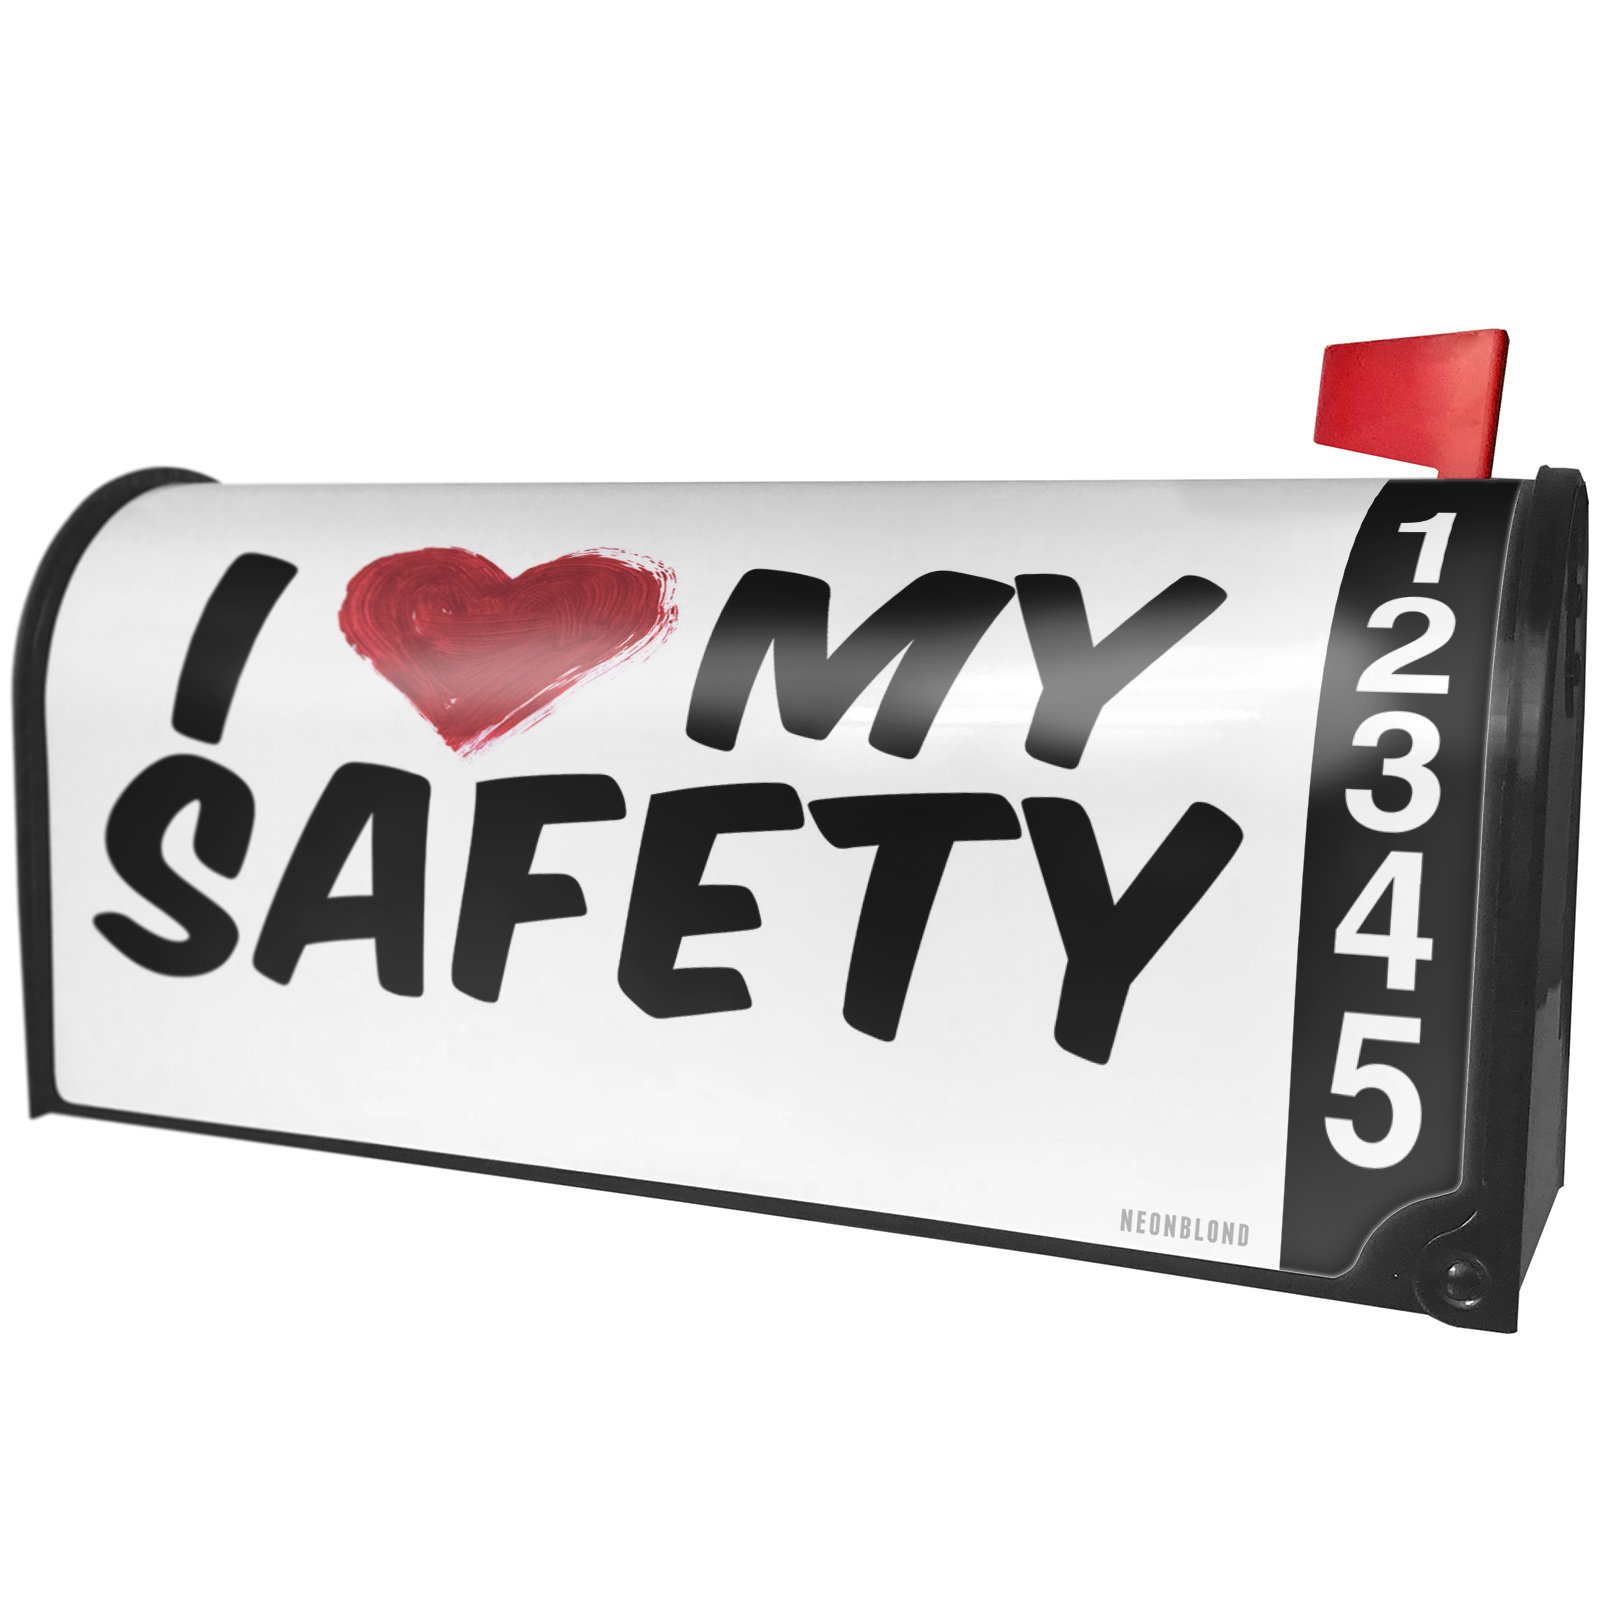 NEONBLOND I Heart Love My Safety Magnetic Mailbox Cover Custom Numbers